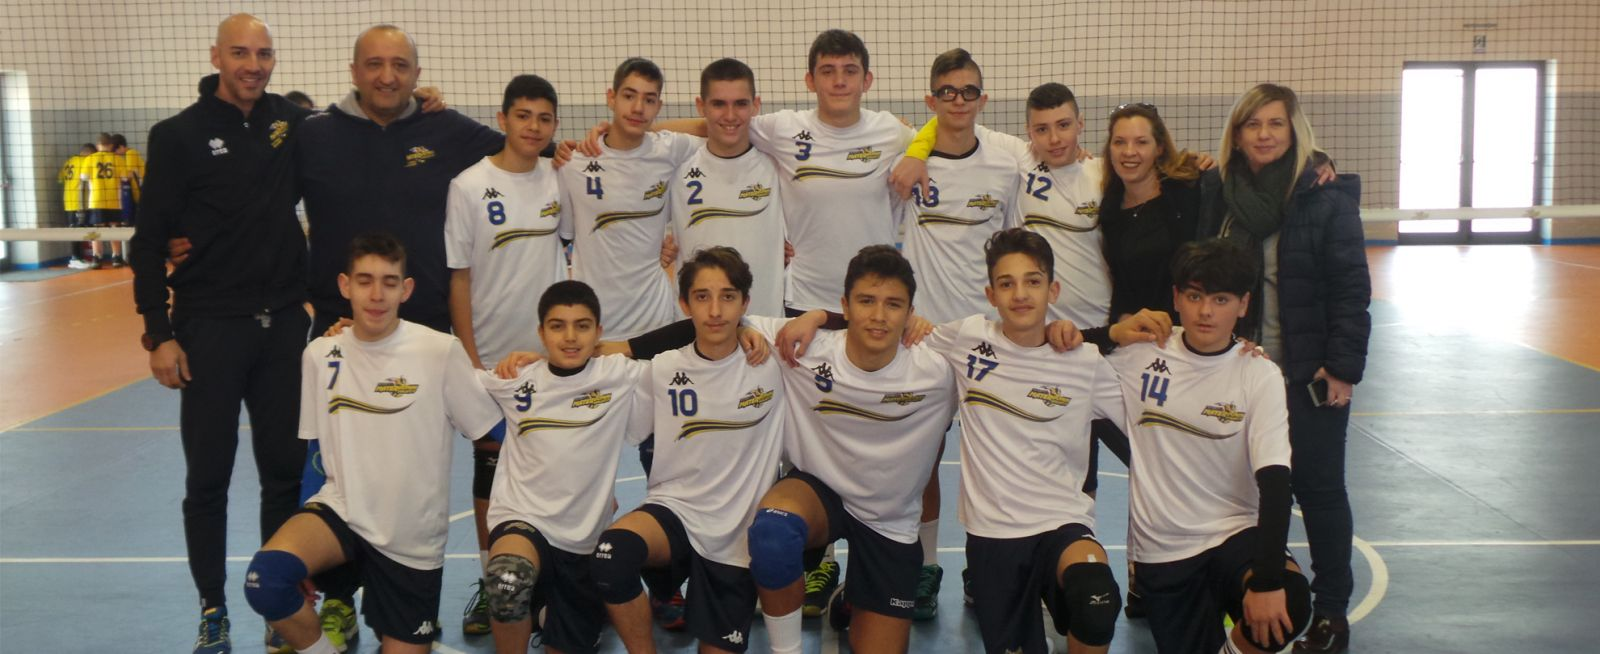 foto La Materdominivolley.it alla Final Eight di Boy League